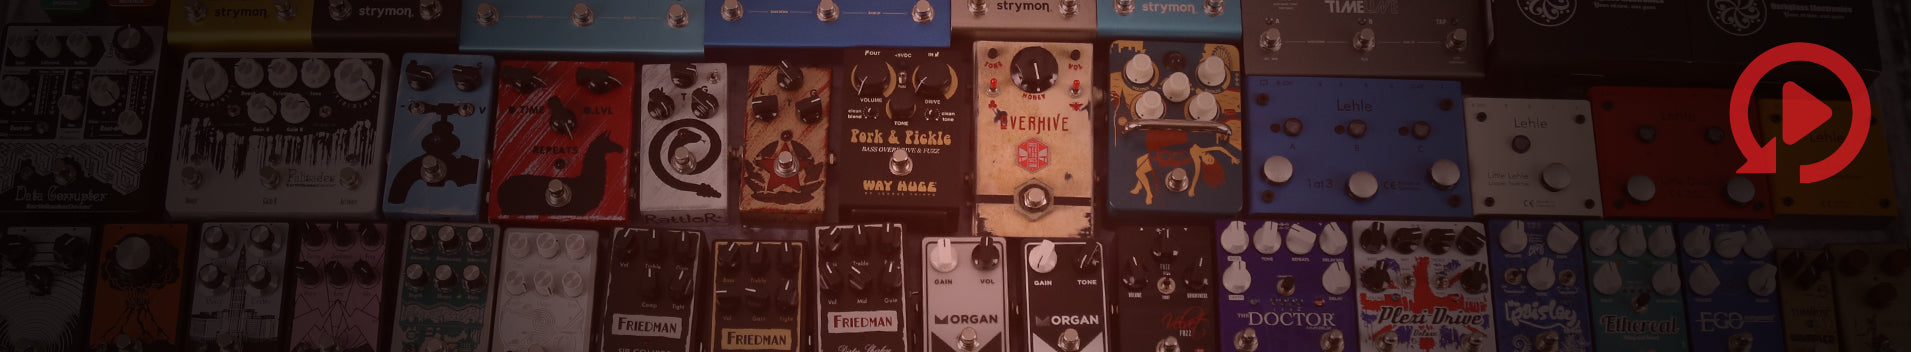 guitar pedals and effects for sale replay guitar. Black Bedroom Furniture Sets. Home Design Ideas